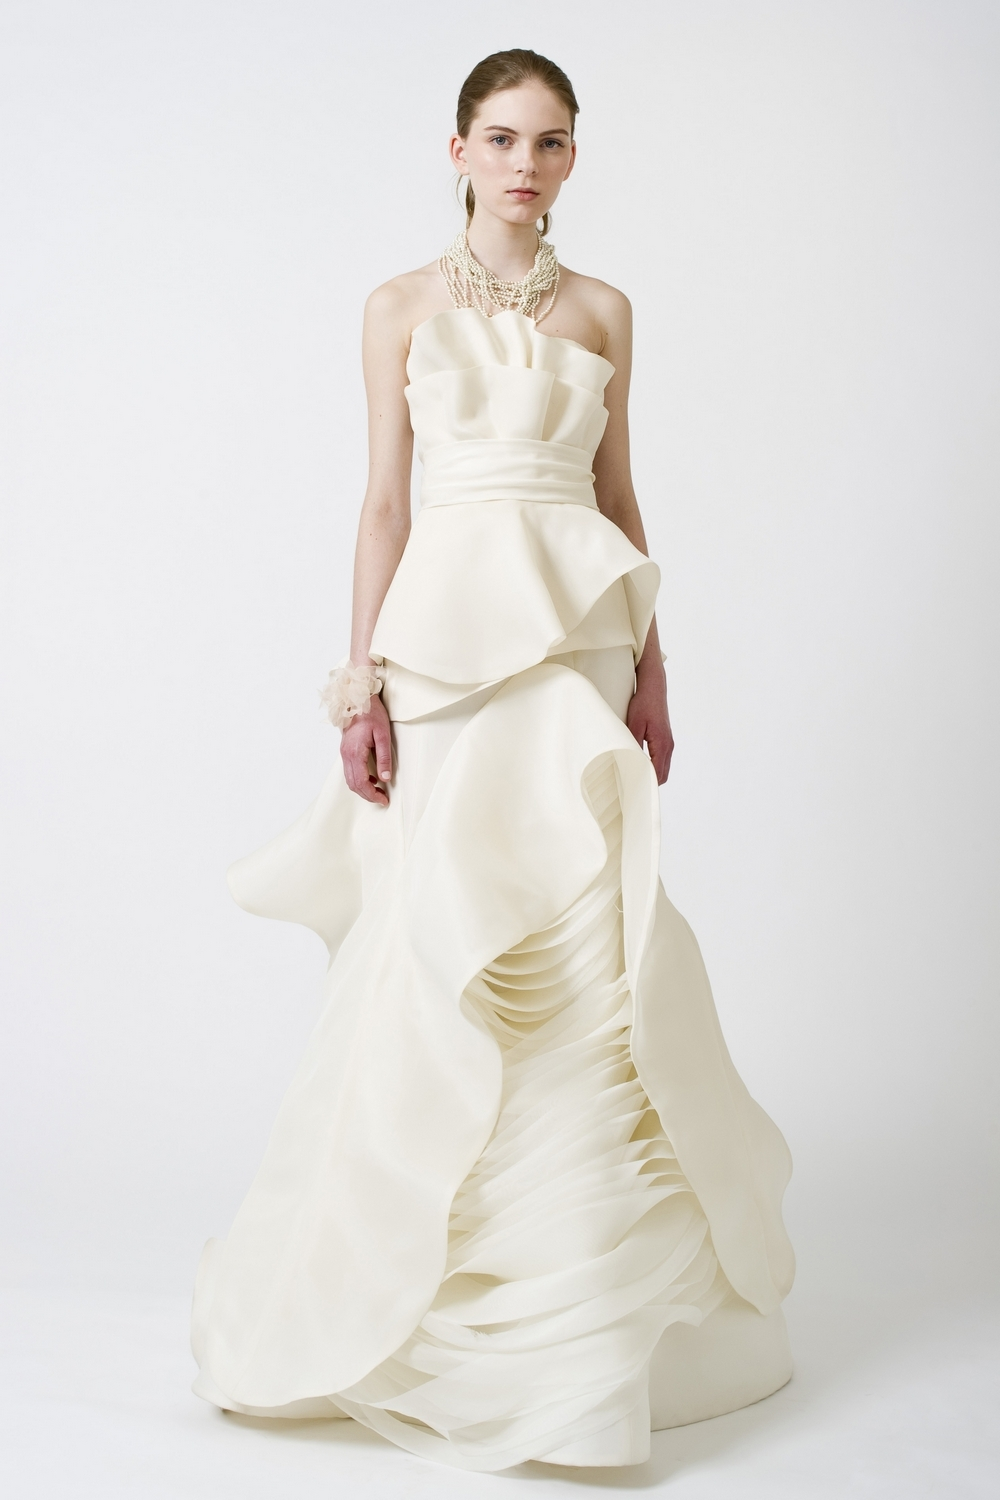 9-spring-2011-vera-wang-wedding-dress-ivory-wave-texture.full